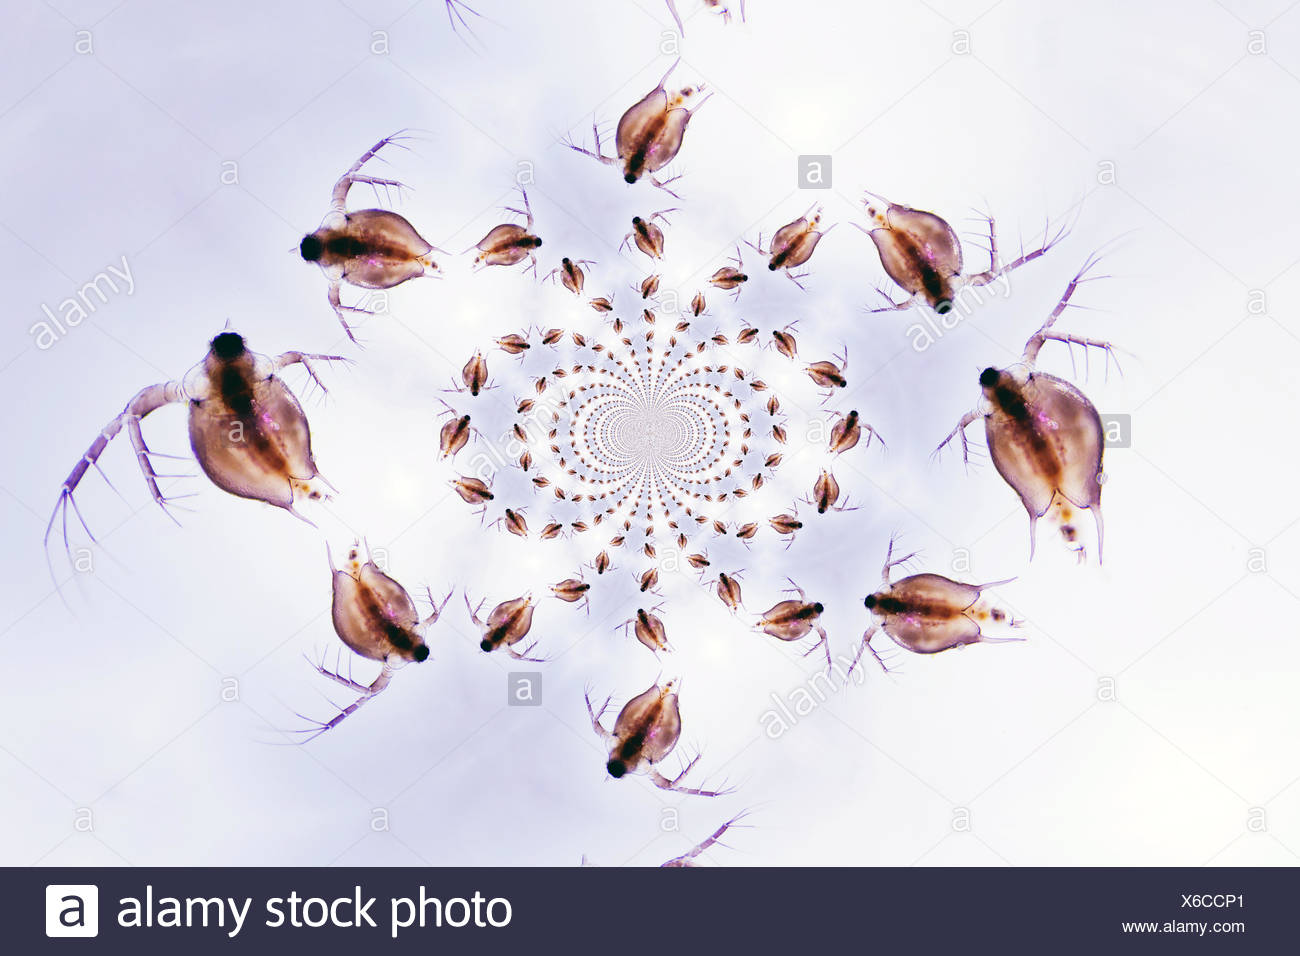 Daphnia Stock Photo